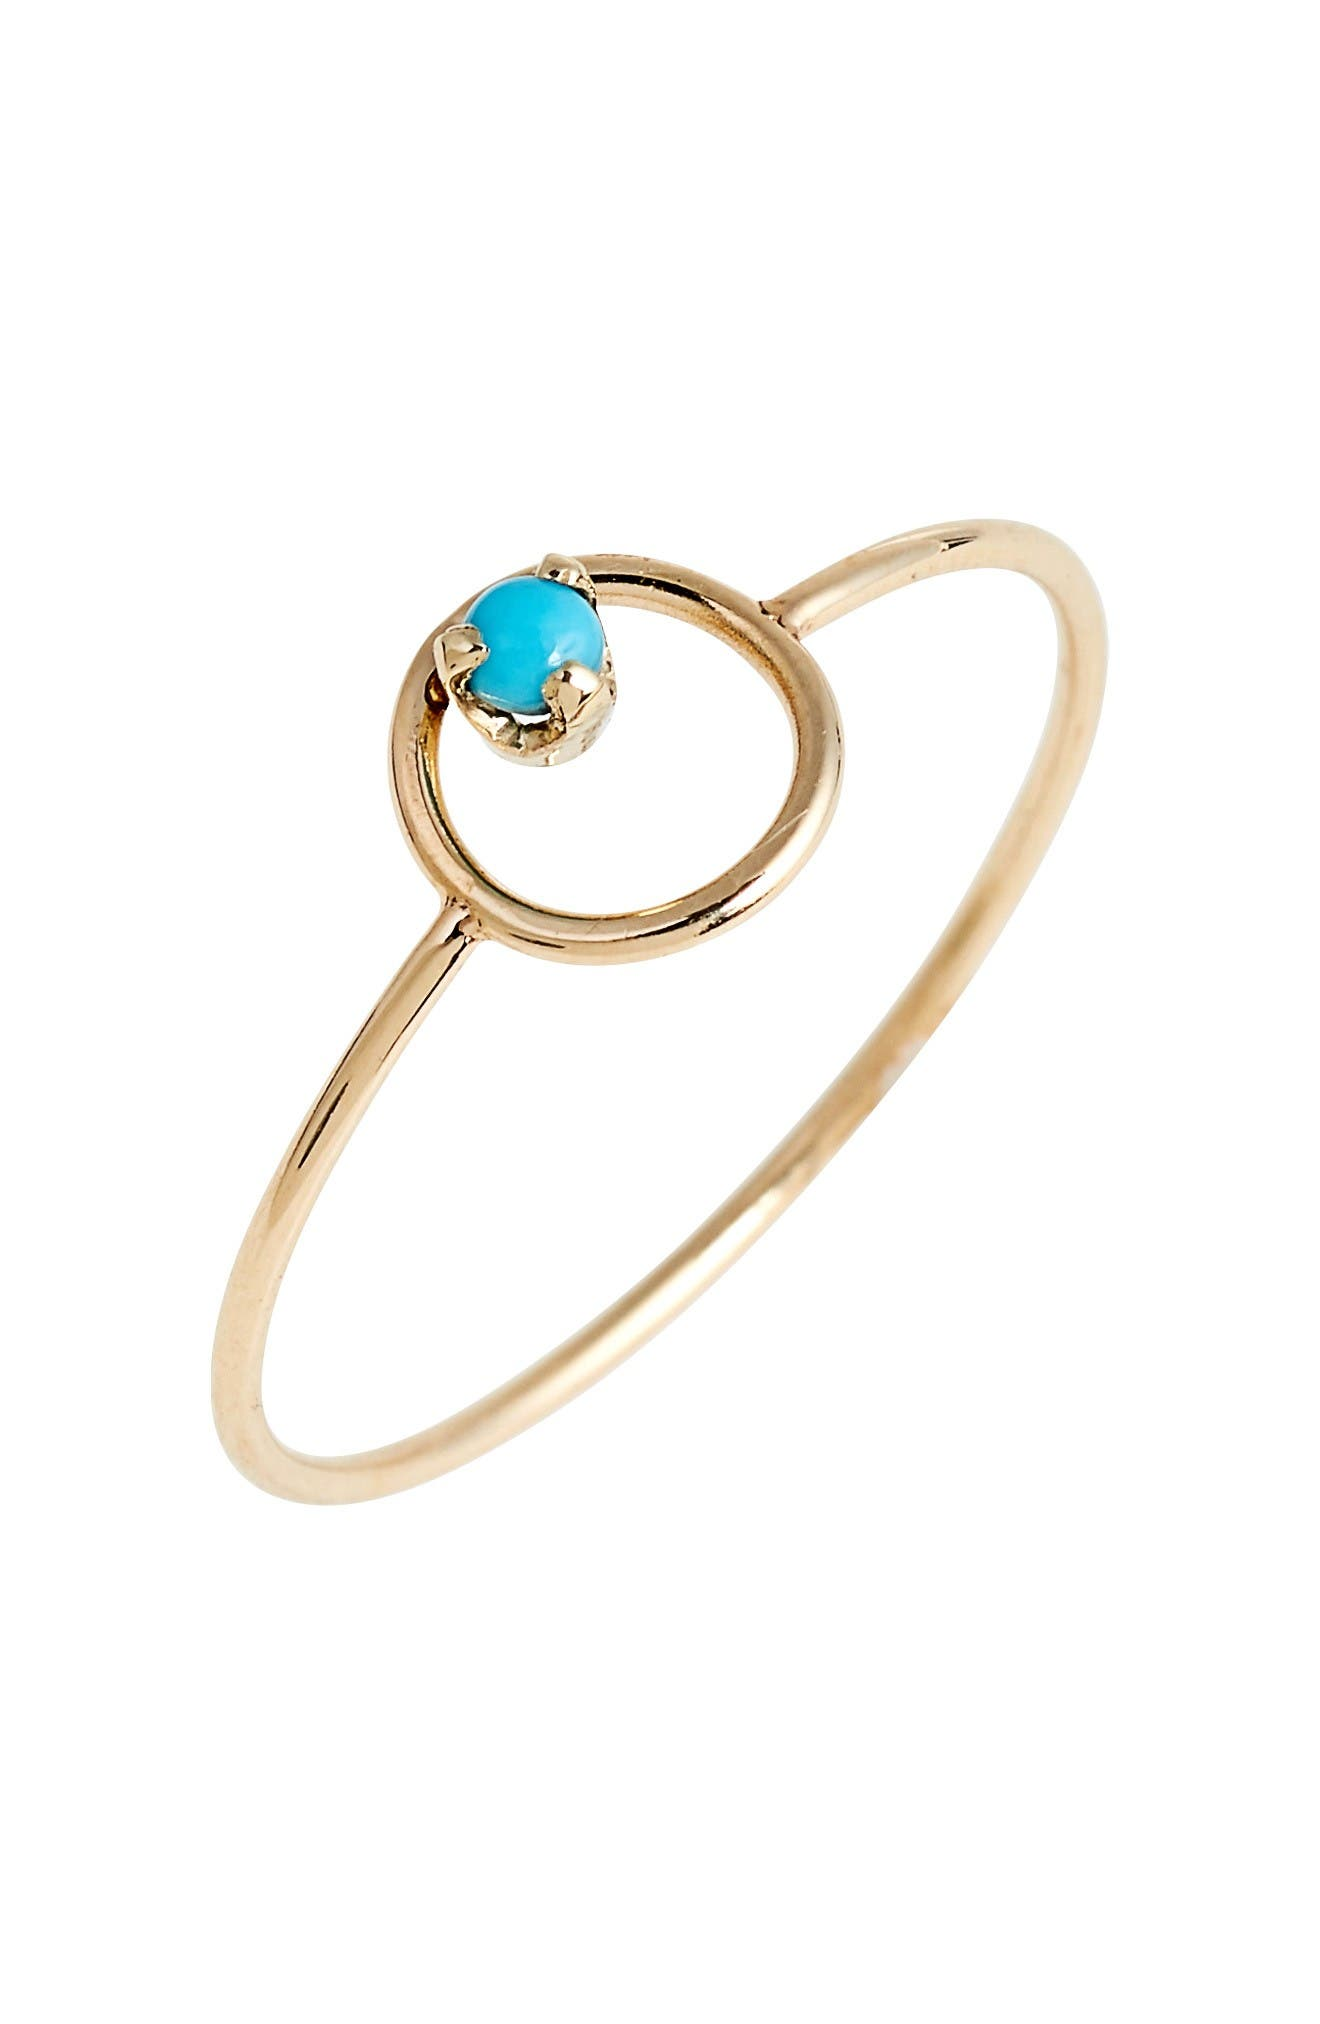 Turquoise Circle Ring,                         Main,                         color, Yellow Gold/ Turquoise